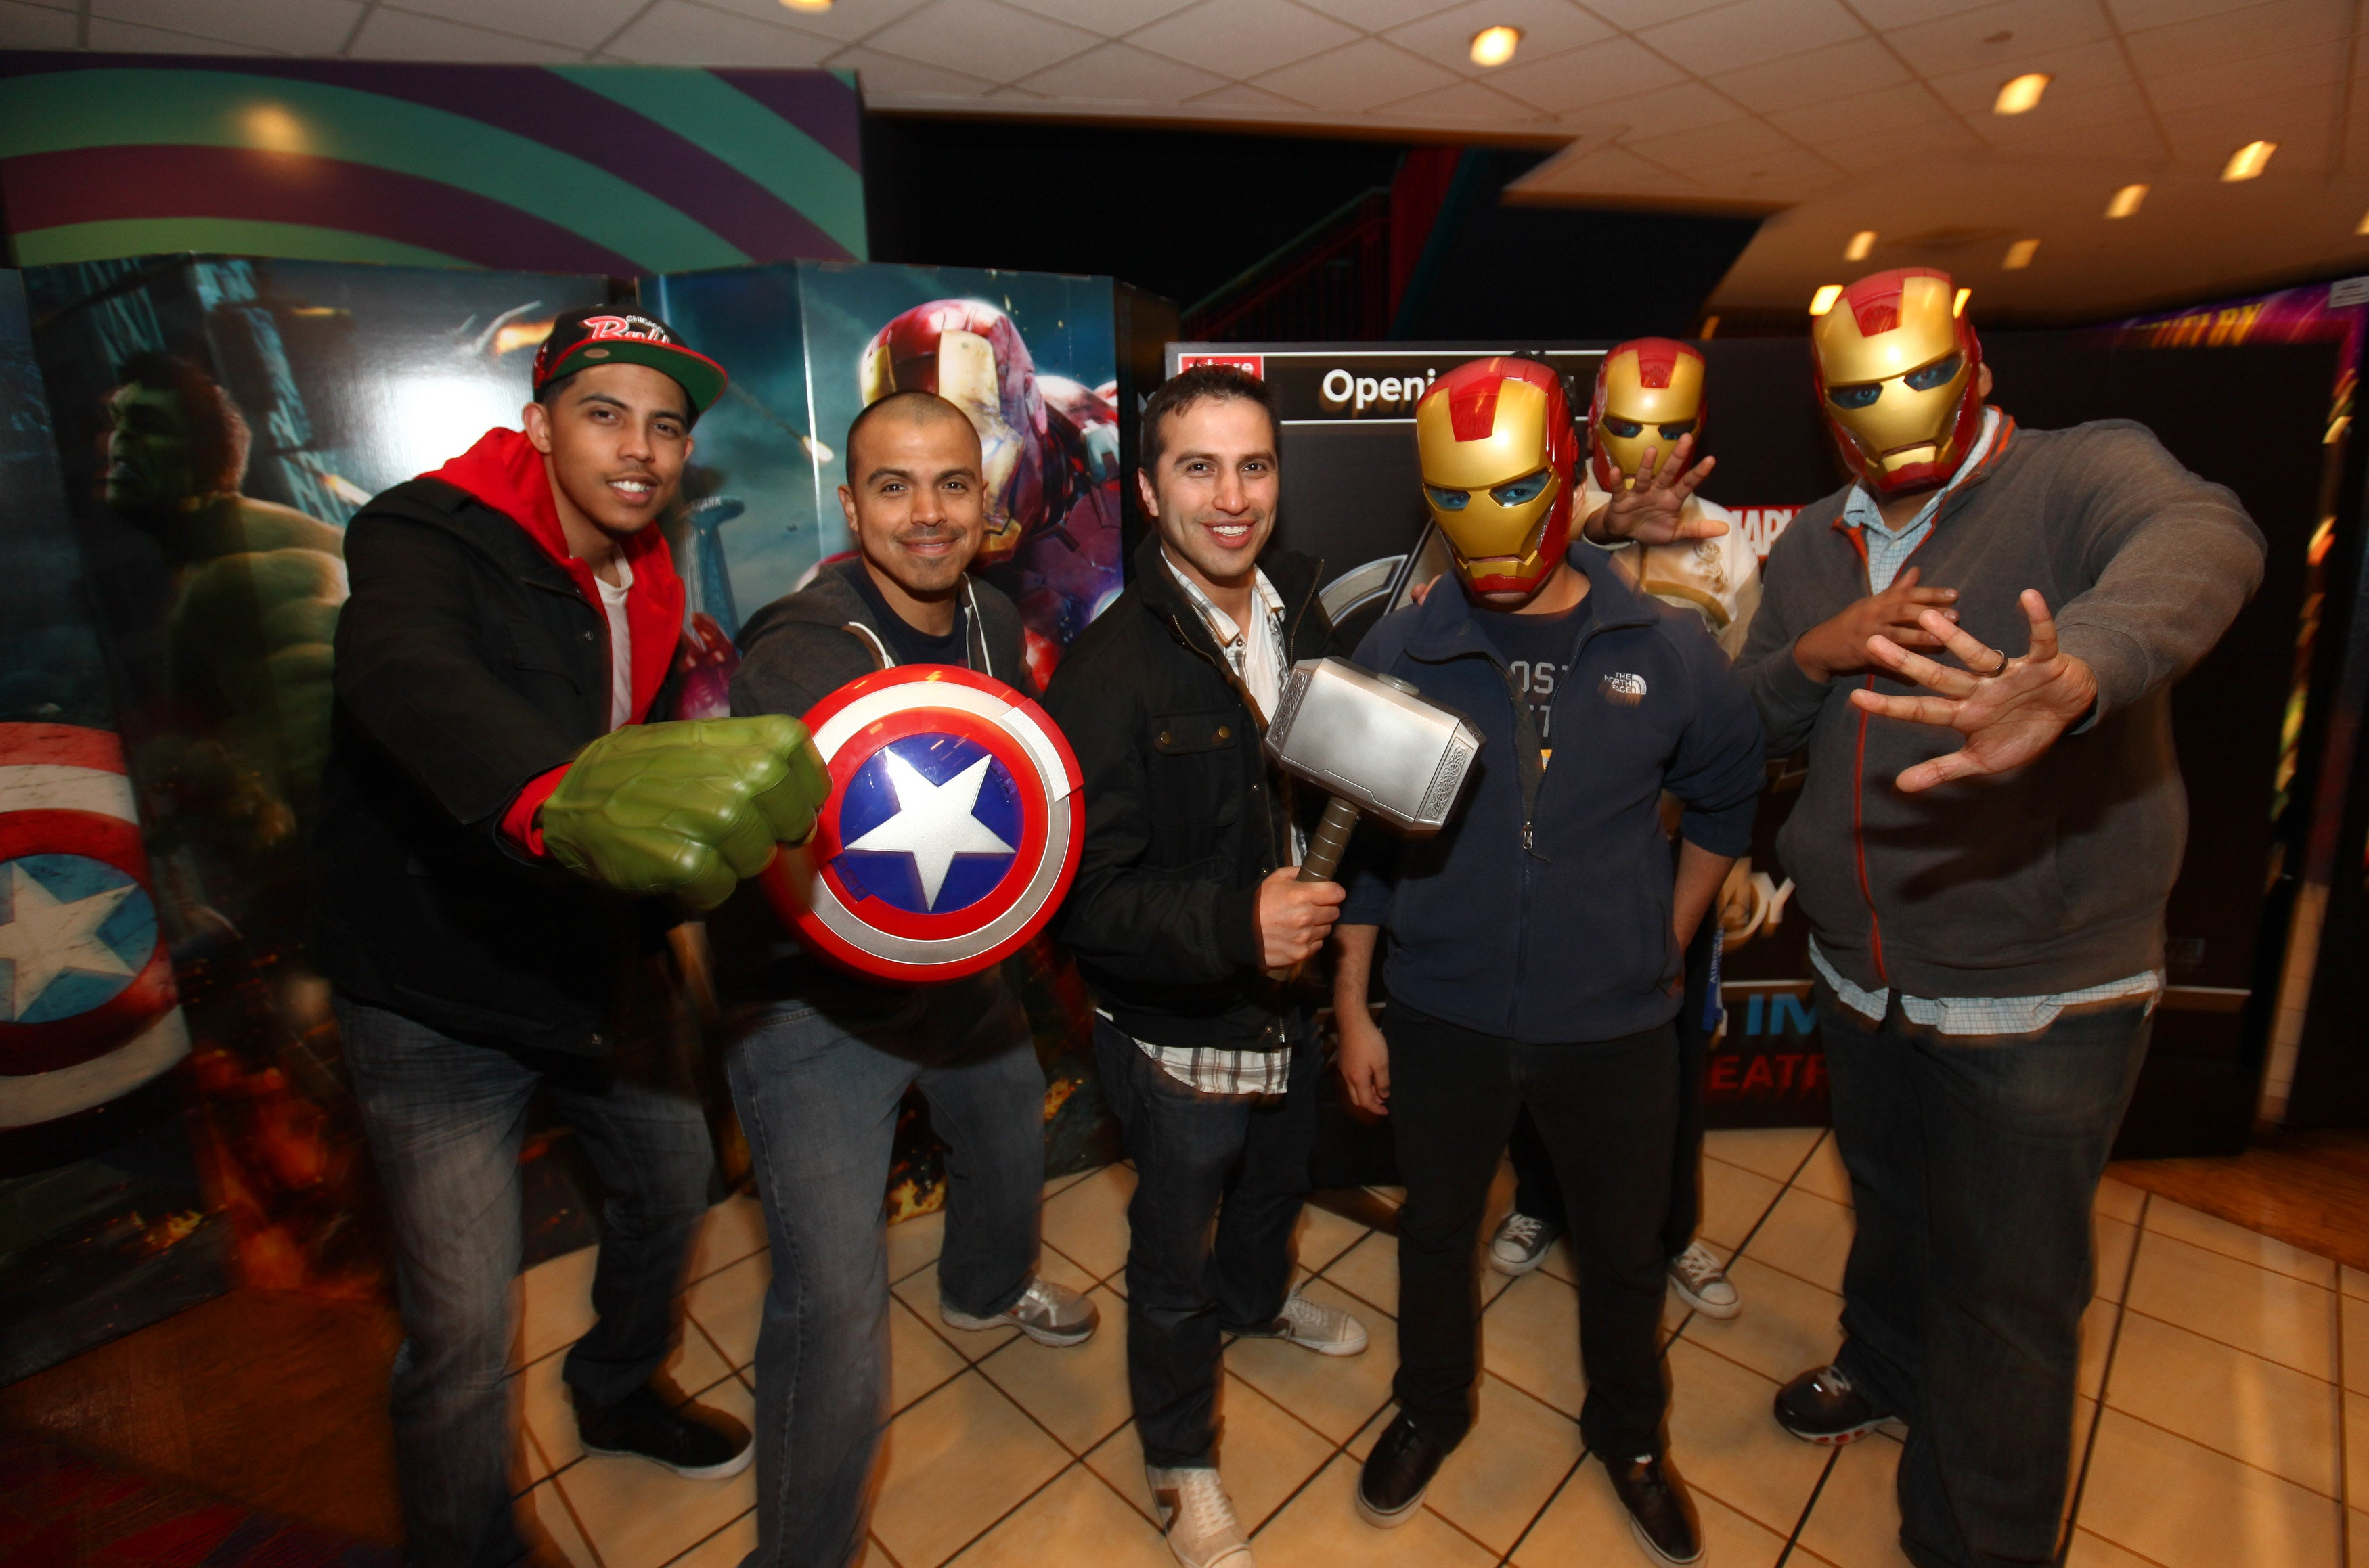 Local Avengers fans enjoy advance screening of ?Marvel?s The Avengers?